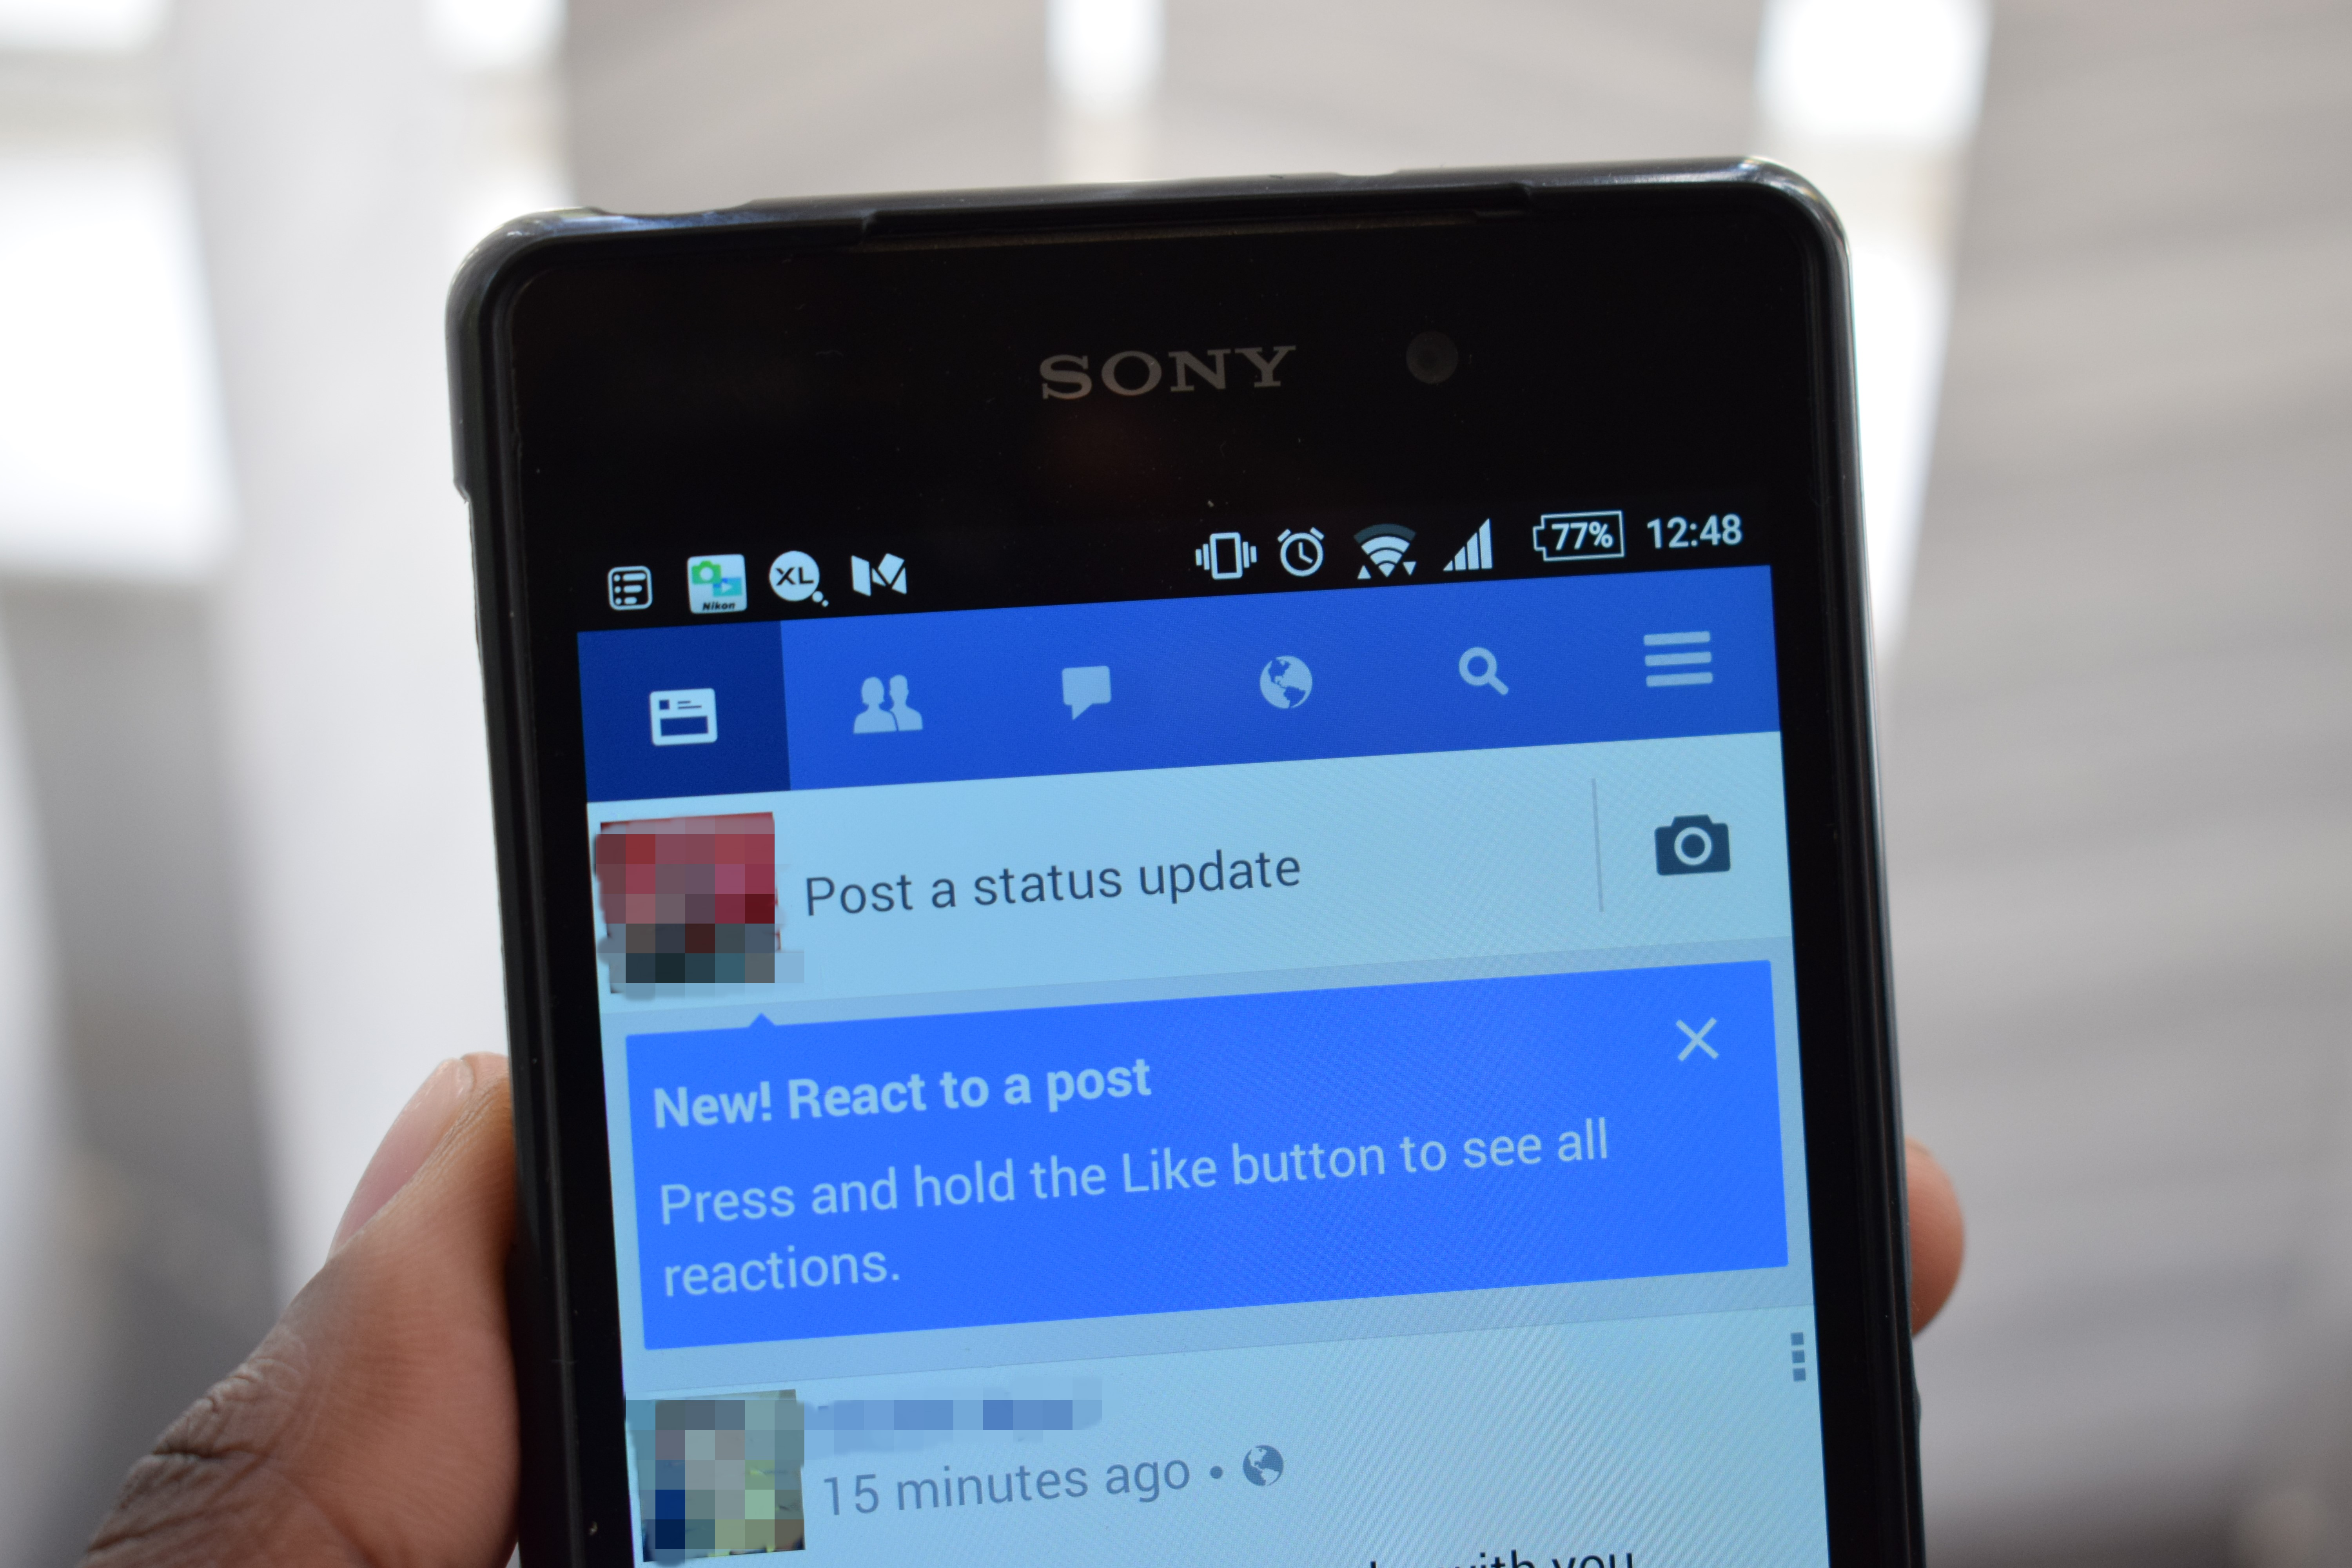 Facebook lite finally gets updated with reaction emojis stopboris Gallery